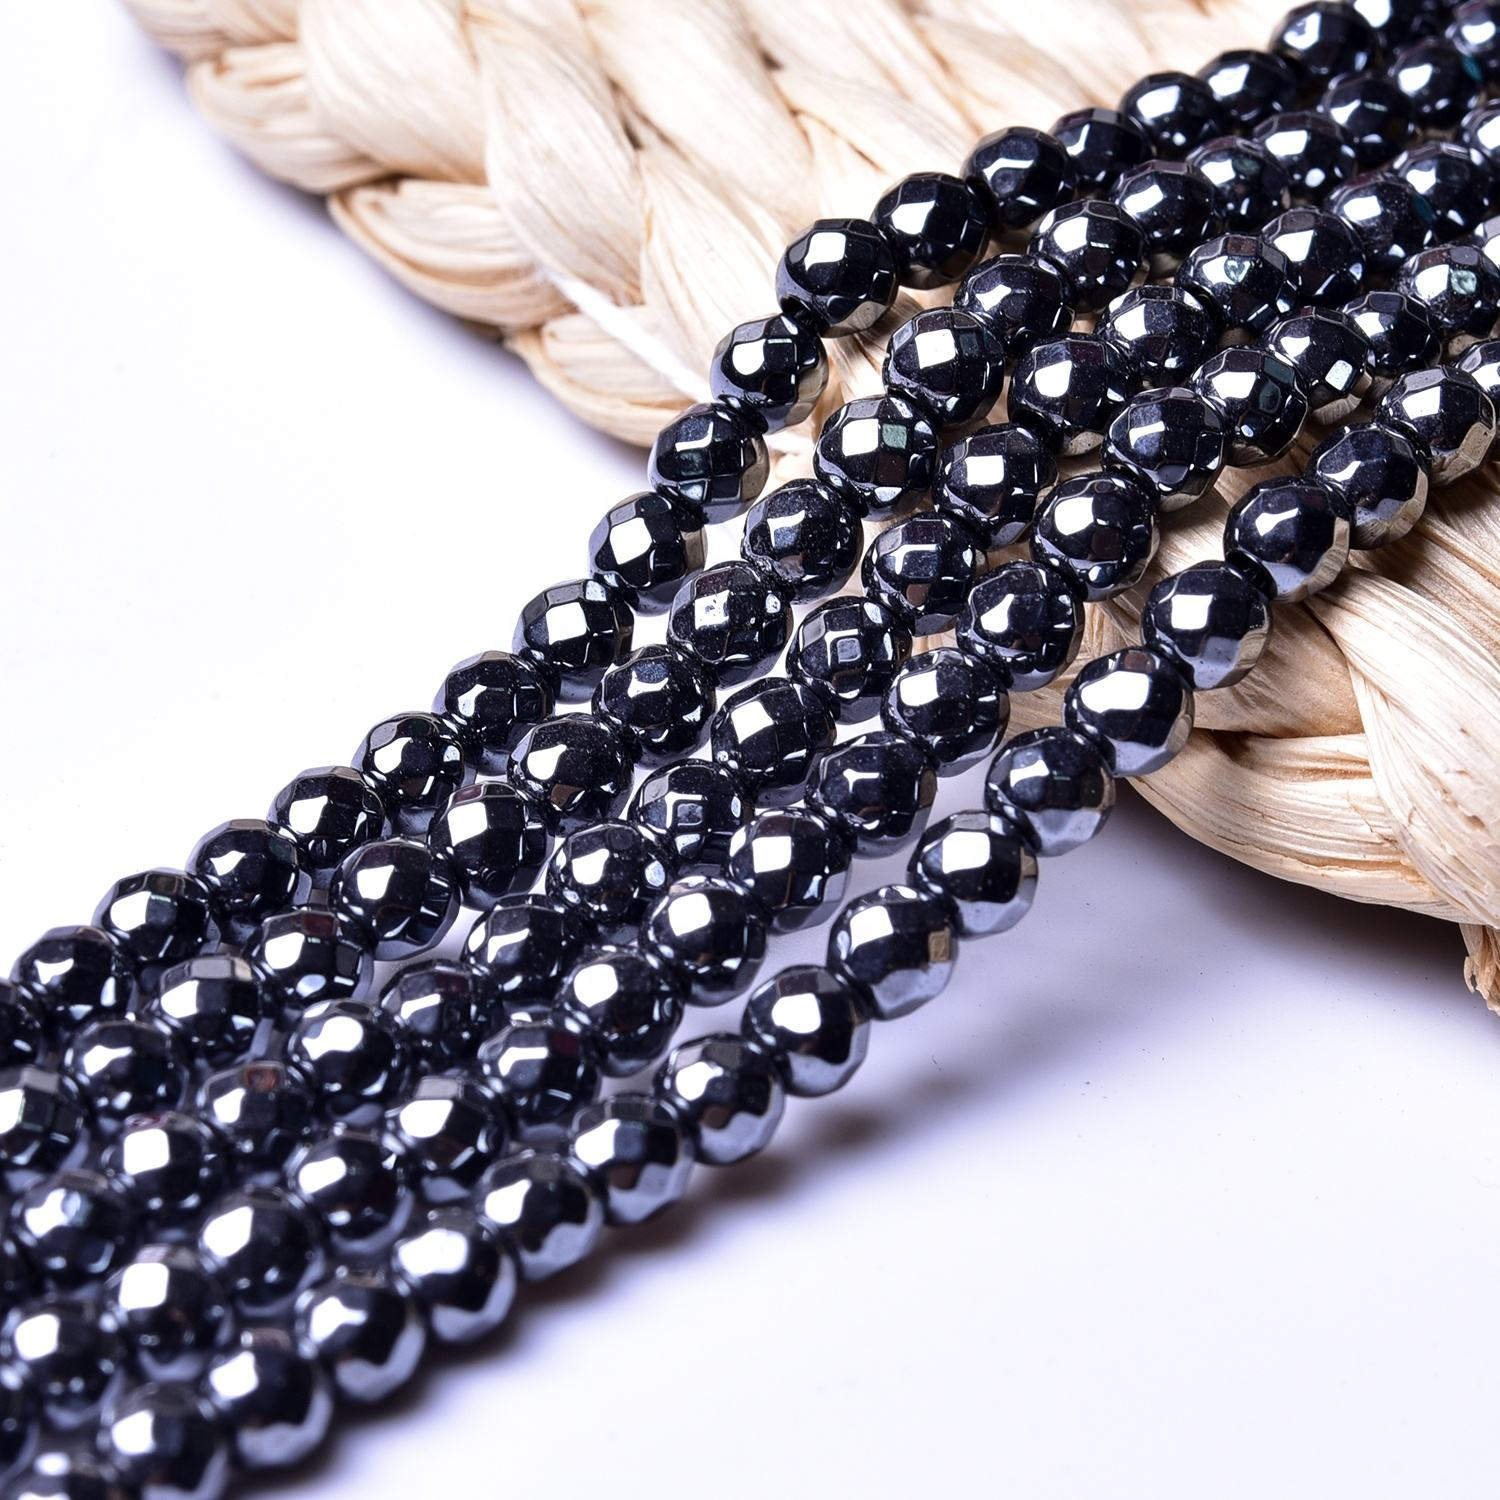 Factory Wholesale Natural Round Faceted Black Hematite Beads 2mm 3mm 4mm Gemstone Loose Beads for DIY Jewellery JL-002-22